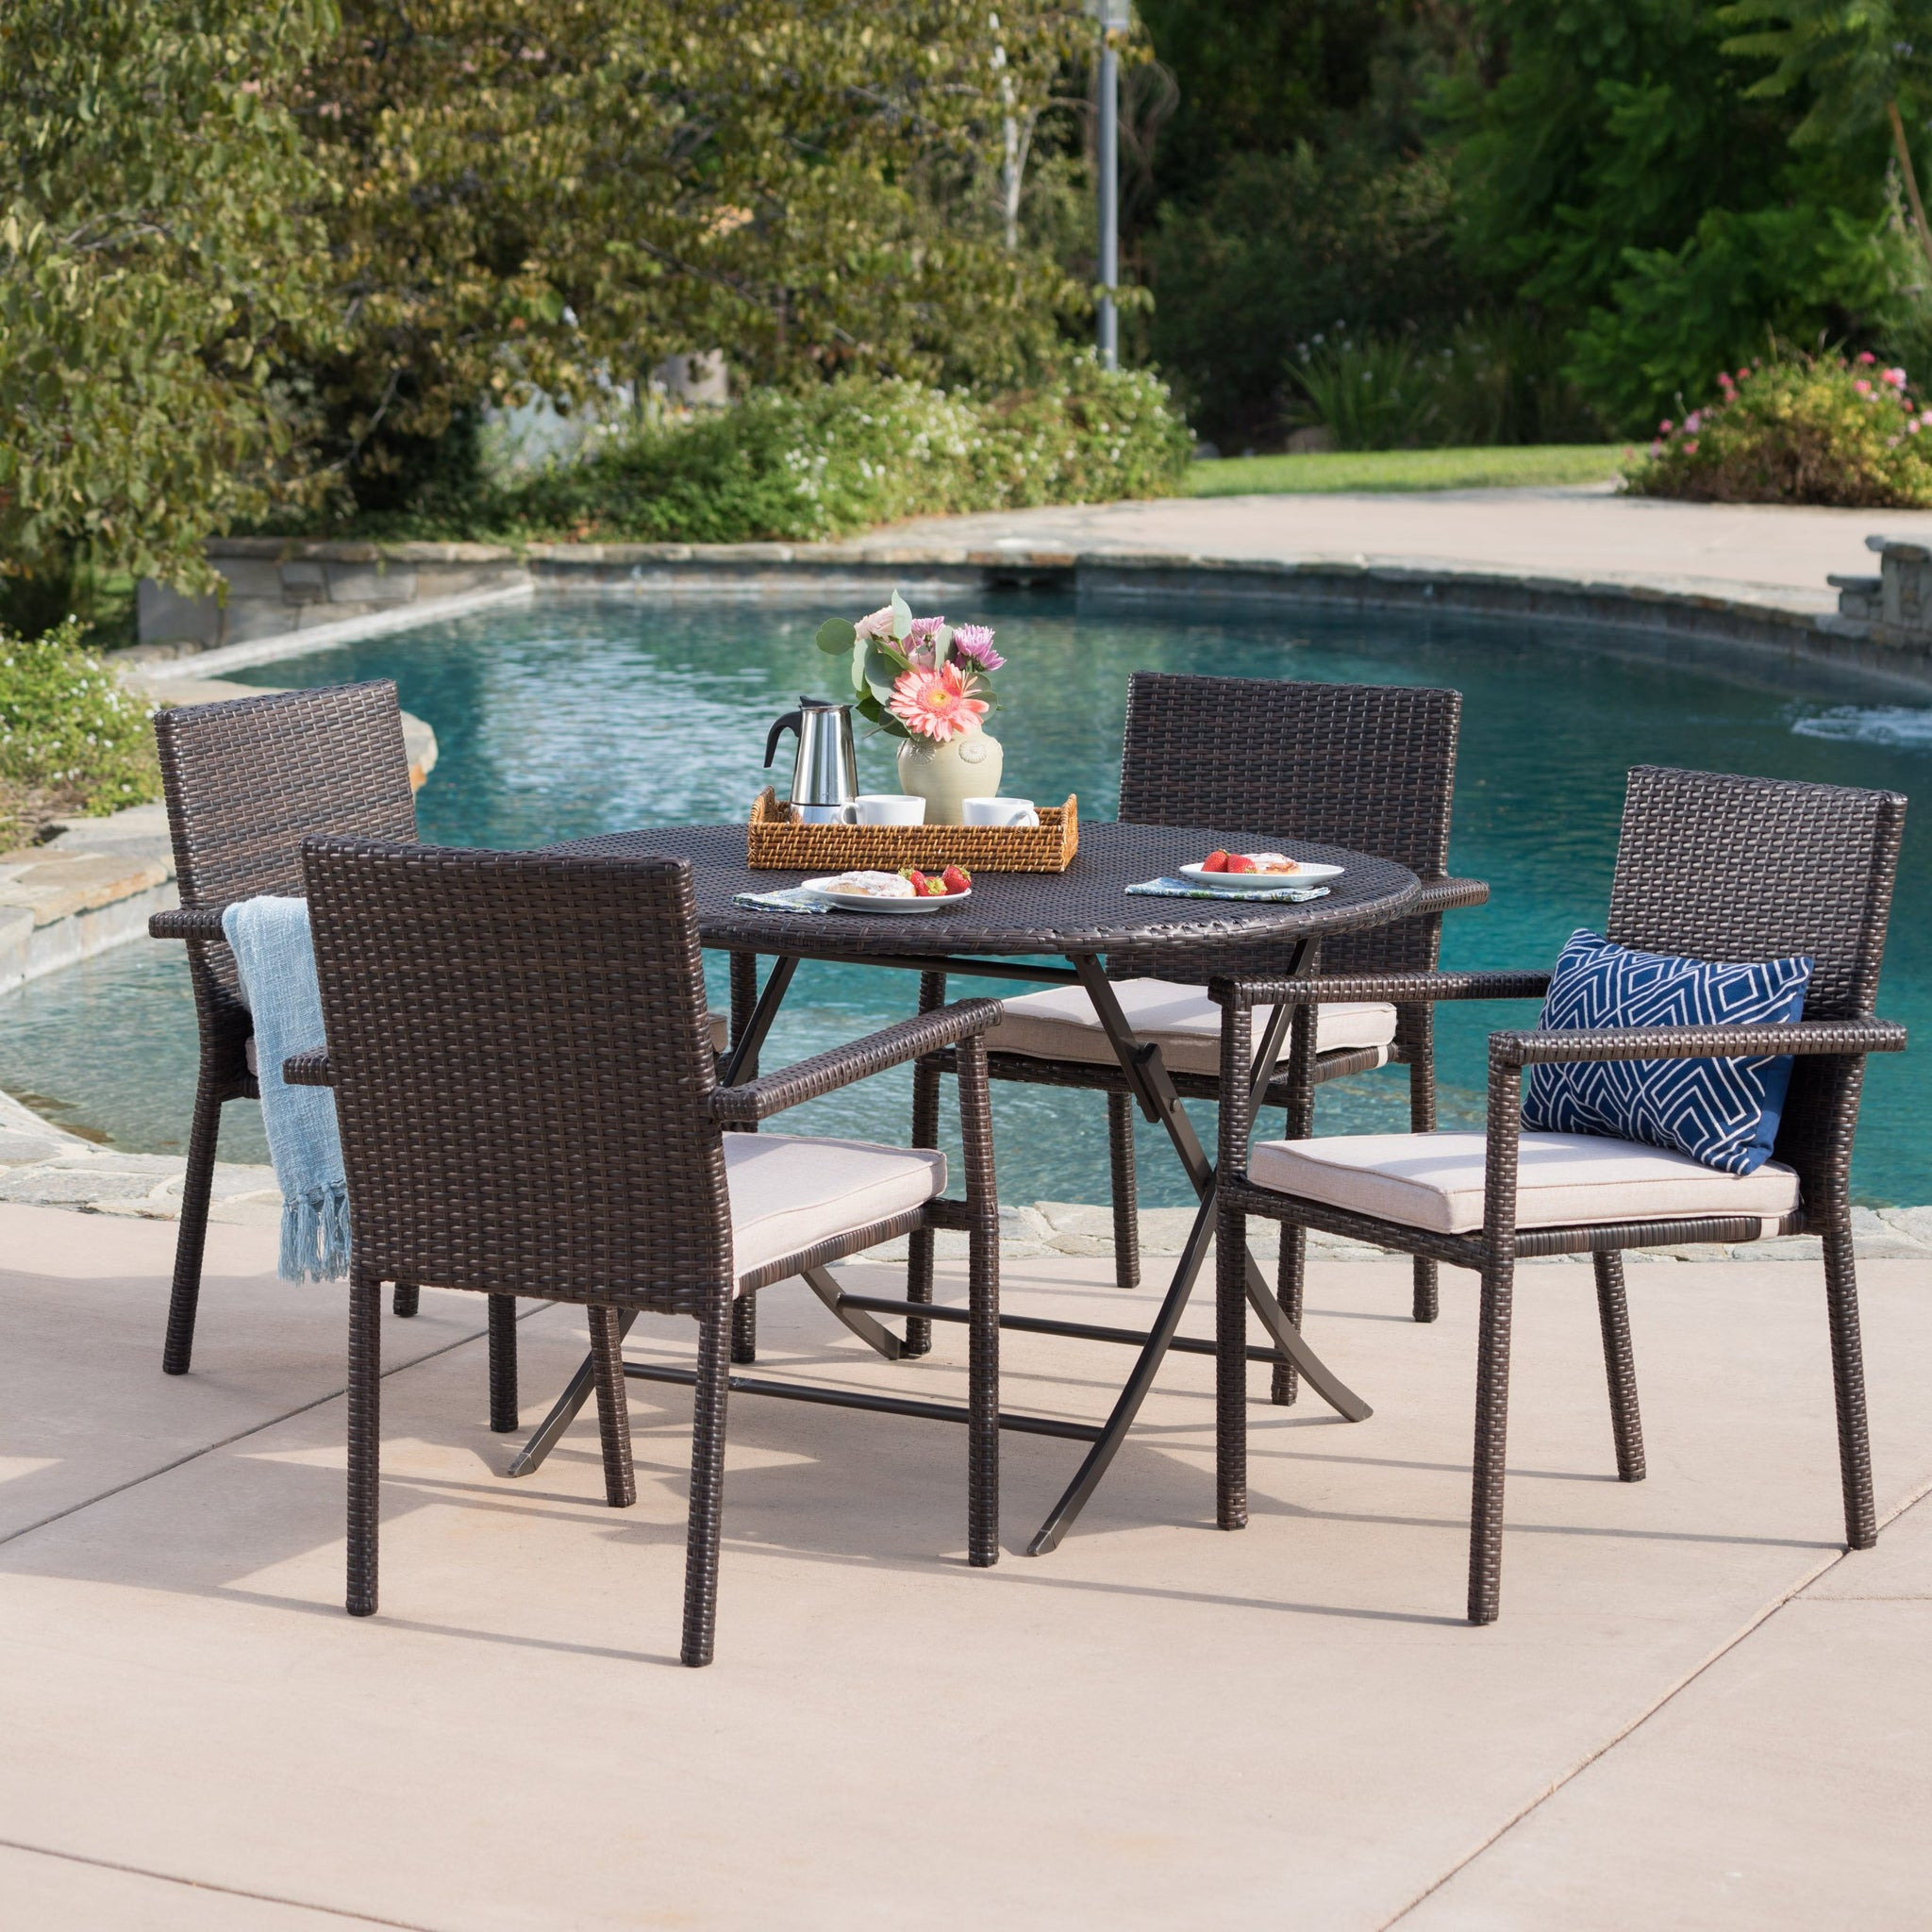 Adeon Outdoor 5 Piece Wicker Dining Set With Foldable Table And Stacking Chairs With Textured Water Resistant Cushions